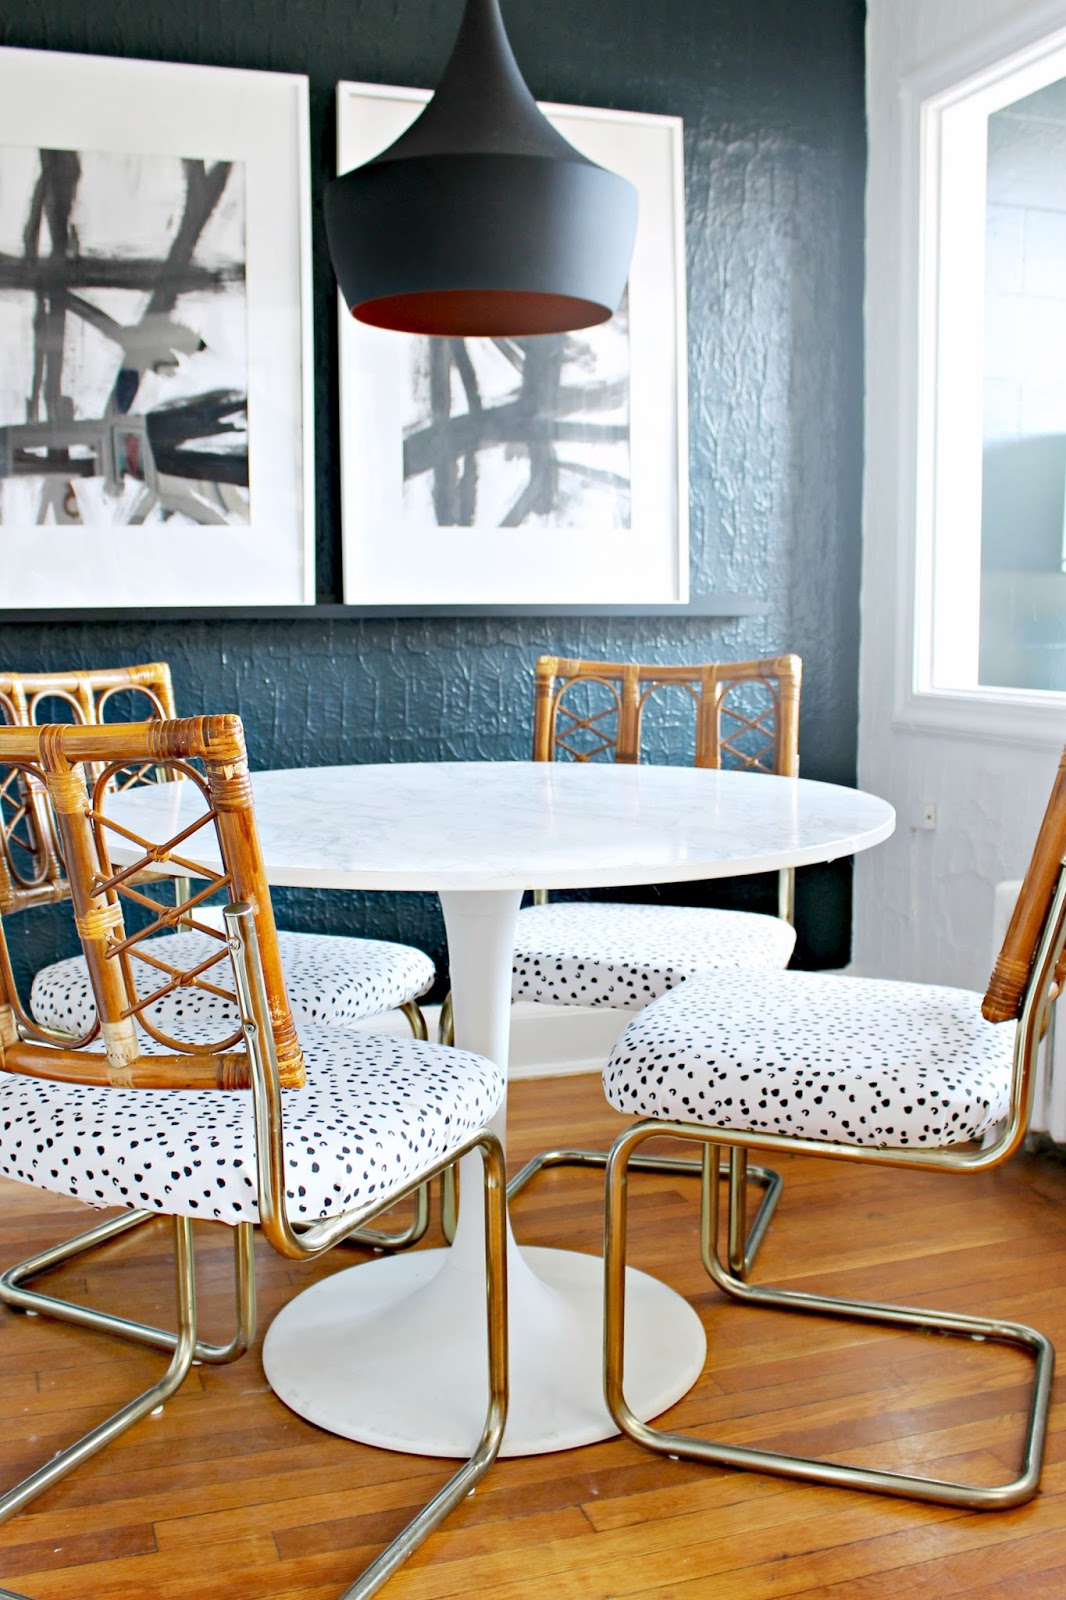 Diy Upholstered Craigslist Chairs Shannon Claire